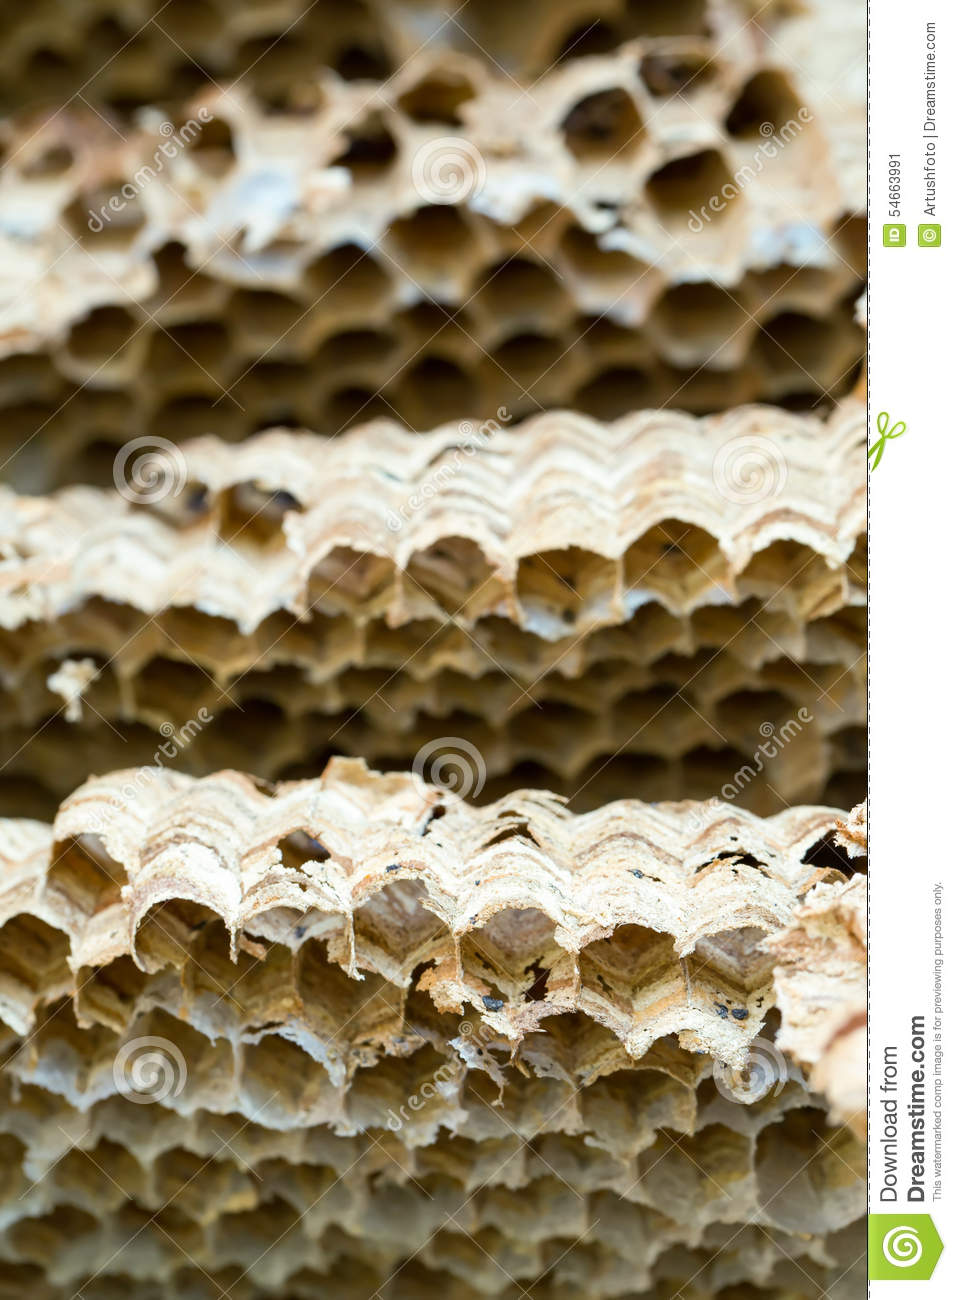 Wasp nest background